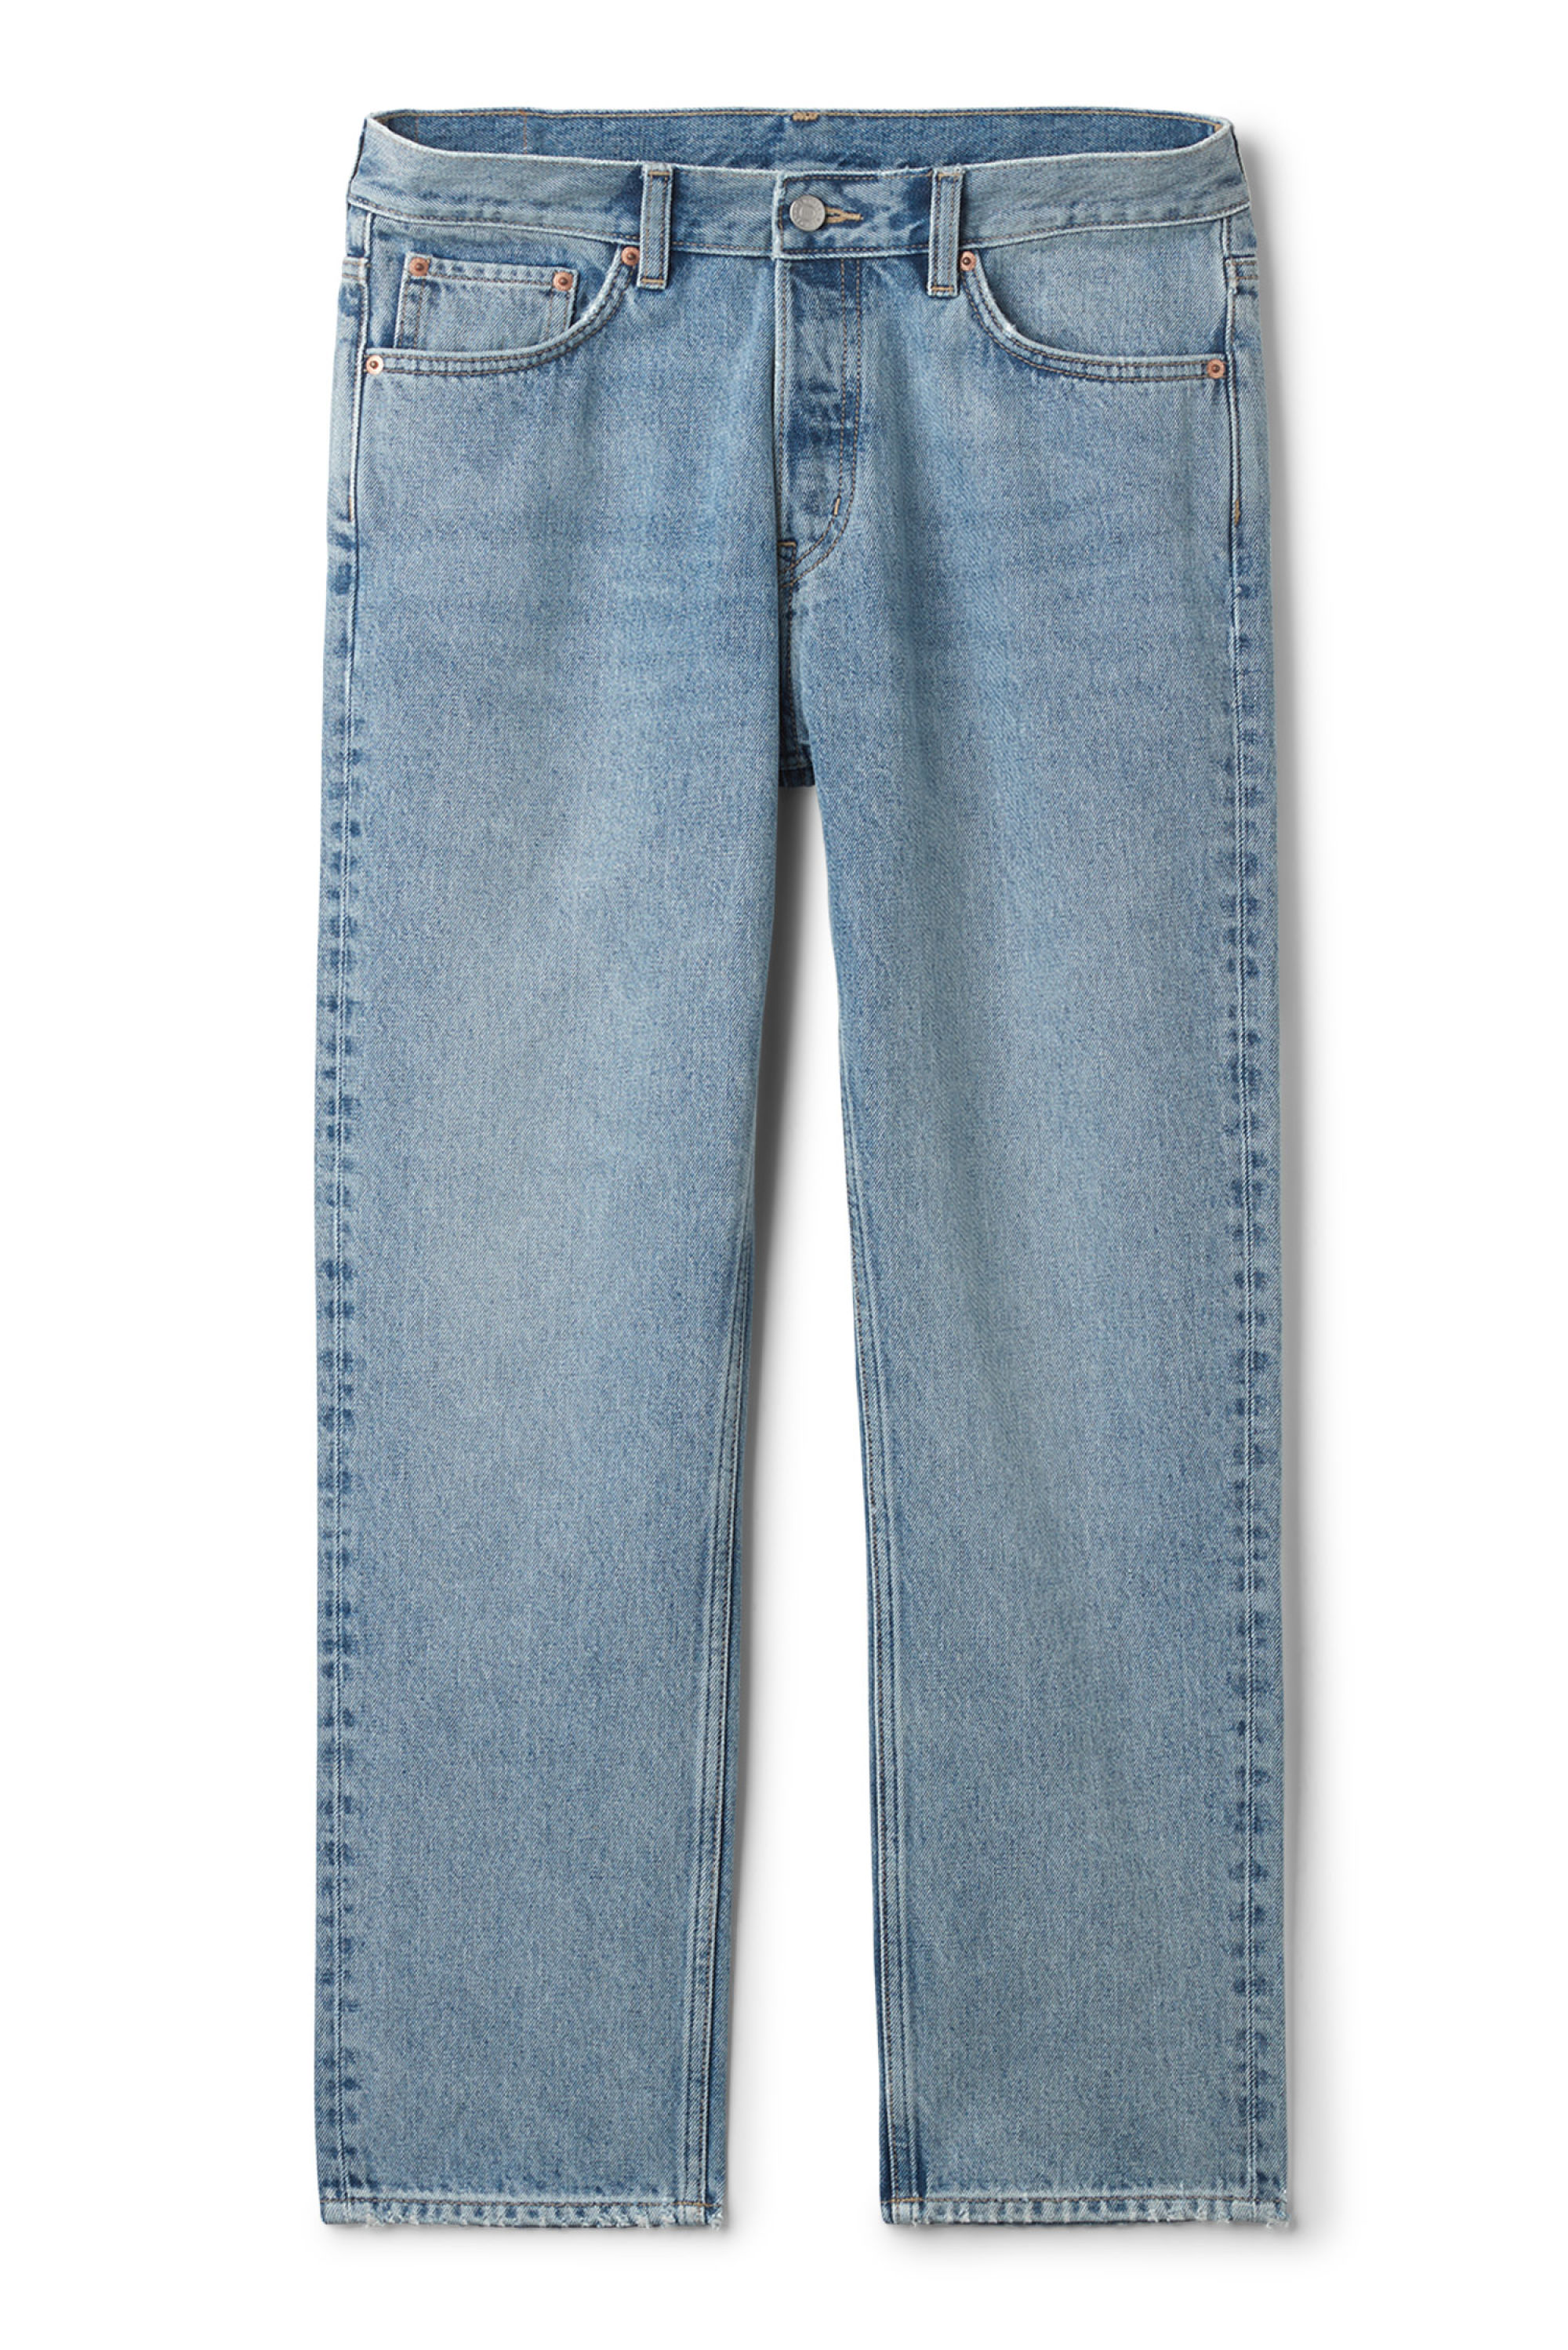 Outfit - Weekday Vacant Wow Blue Jeans